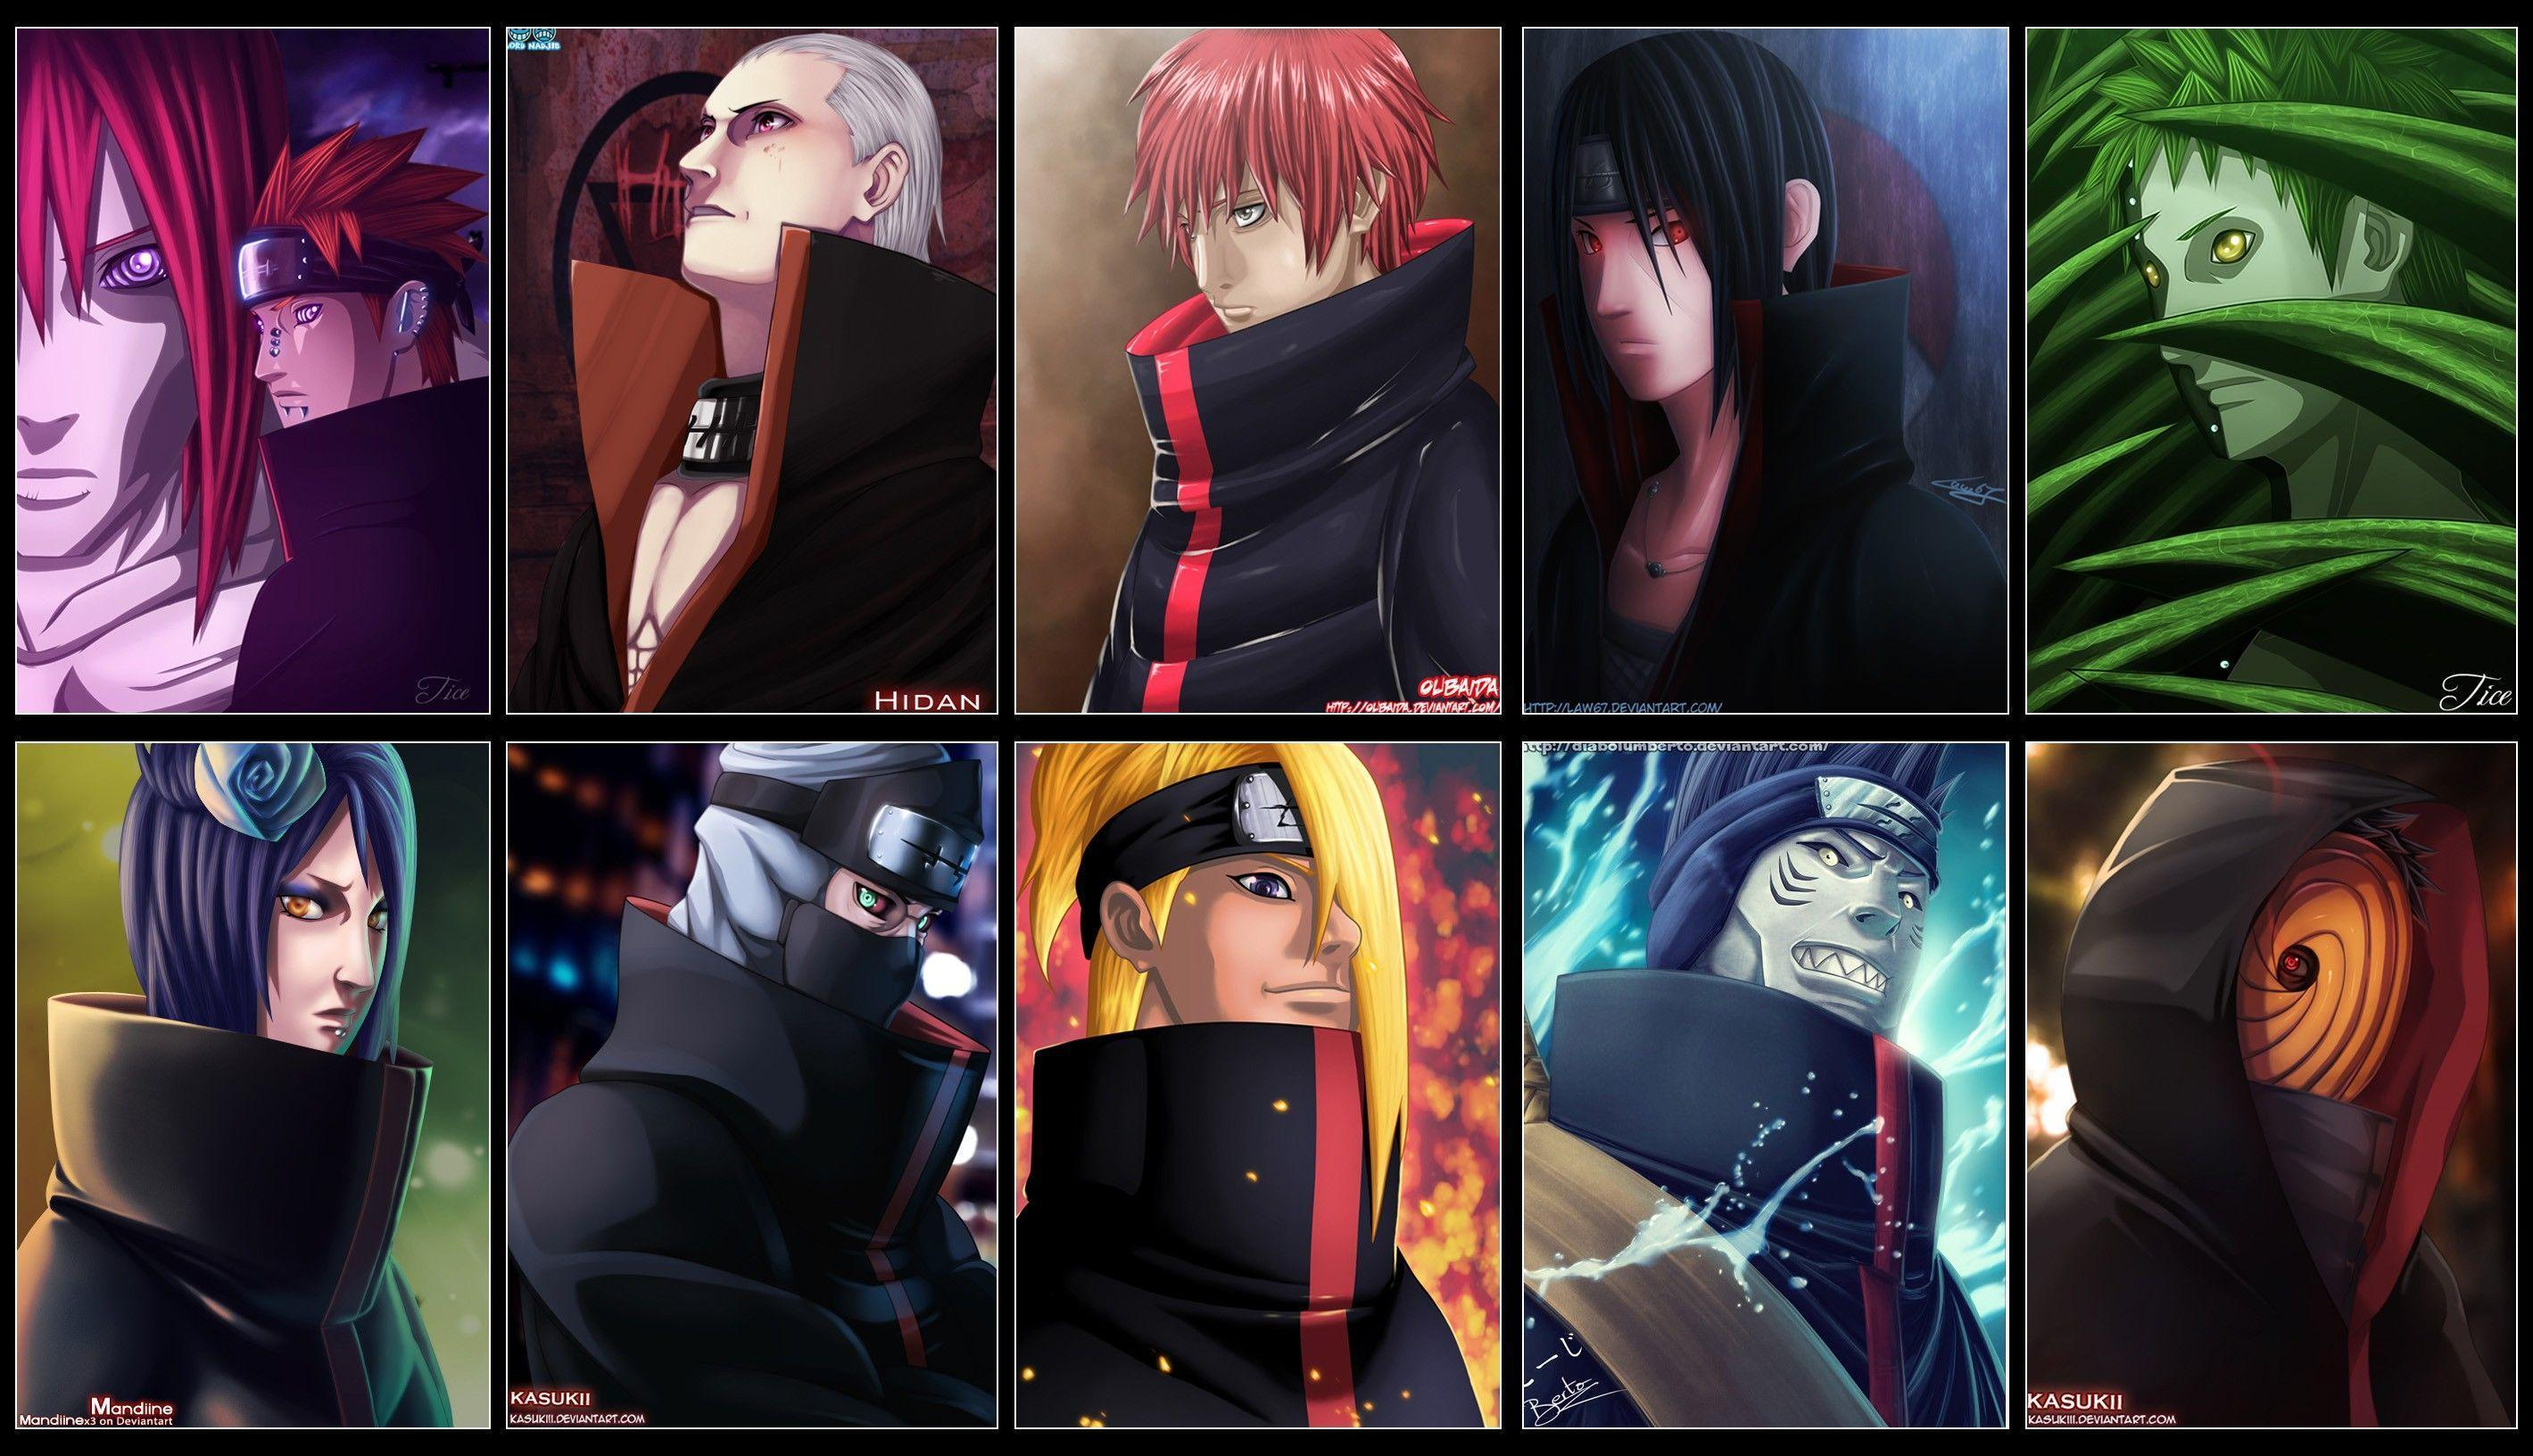 Download Naruto Wallpaper Akatsuki HD Desktop #8297 (612) Full ...